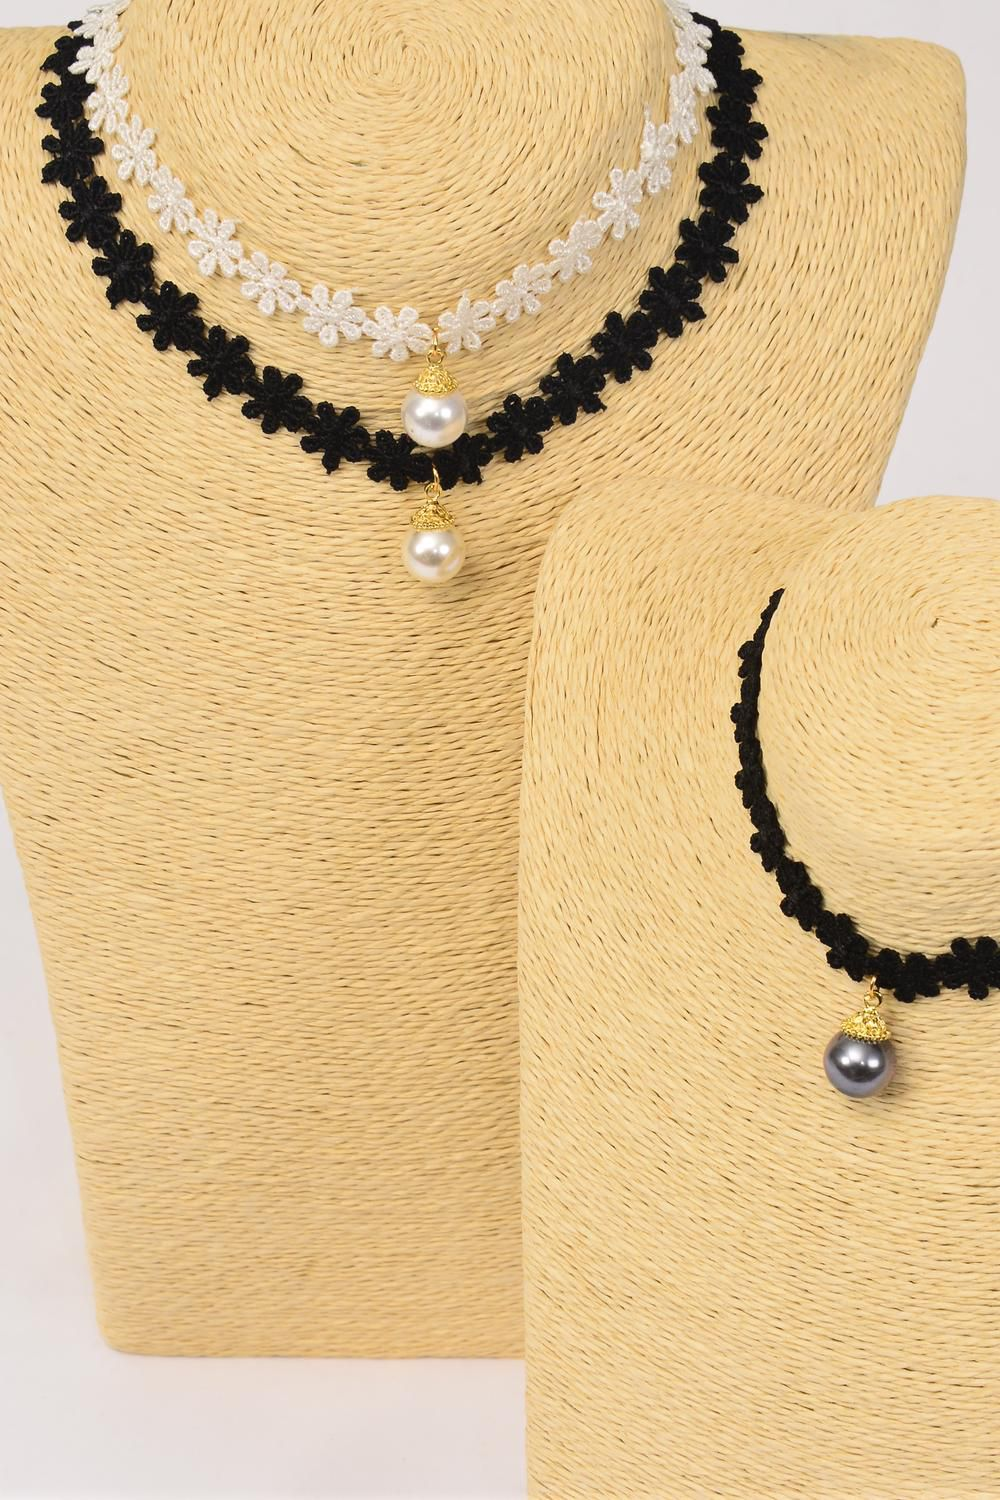 "Necklace Choker Black Lace 14 mm Pearl Pendant/DZ Size-14"" W Extension Chain,4 Gray,4 Cream,4 White,3 of each Color Asst,Display Card & OPP Bag & UPC Code"